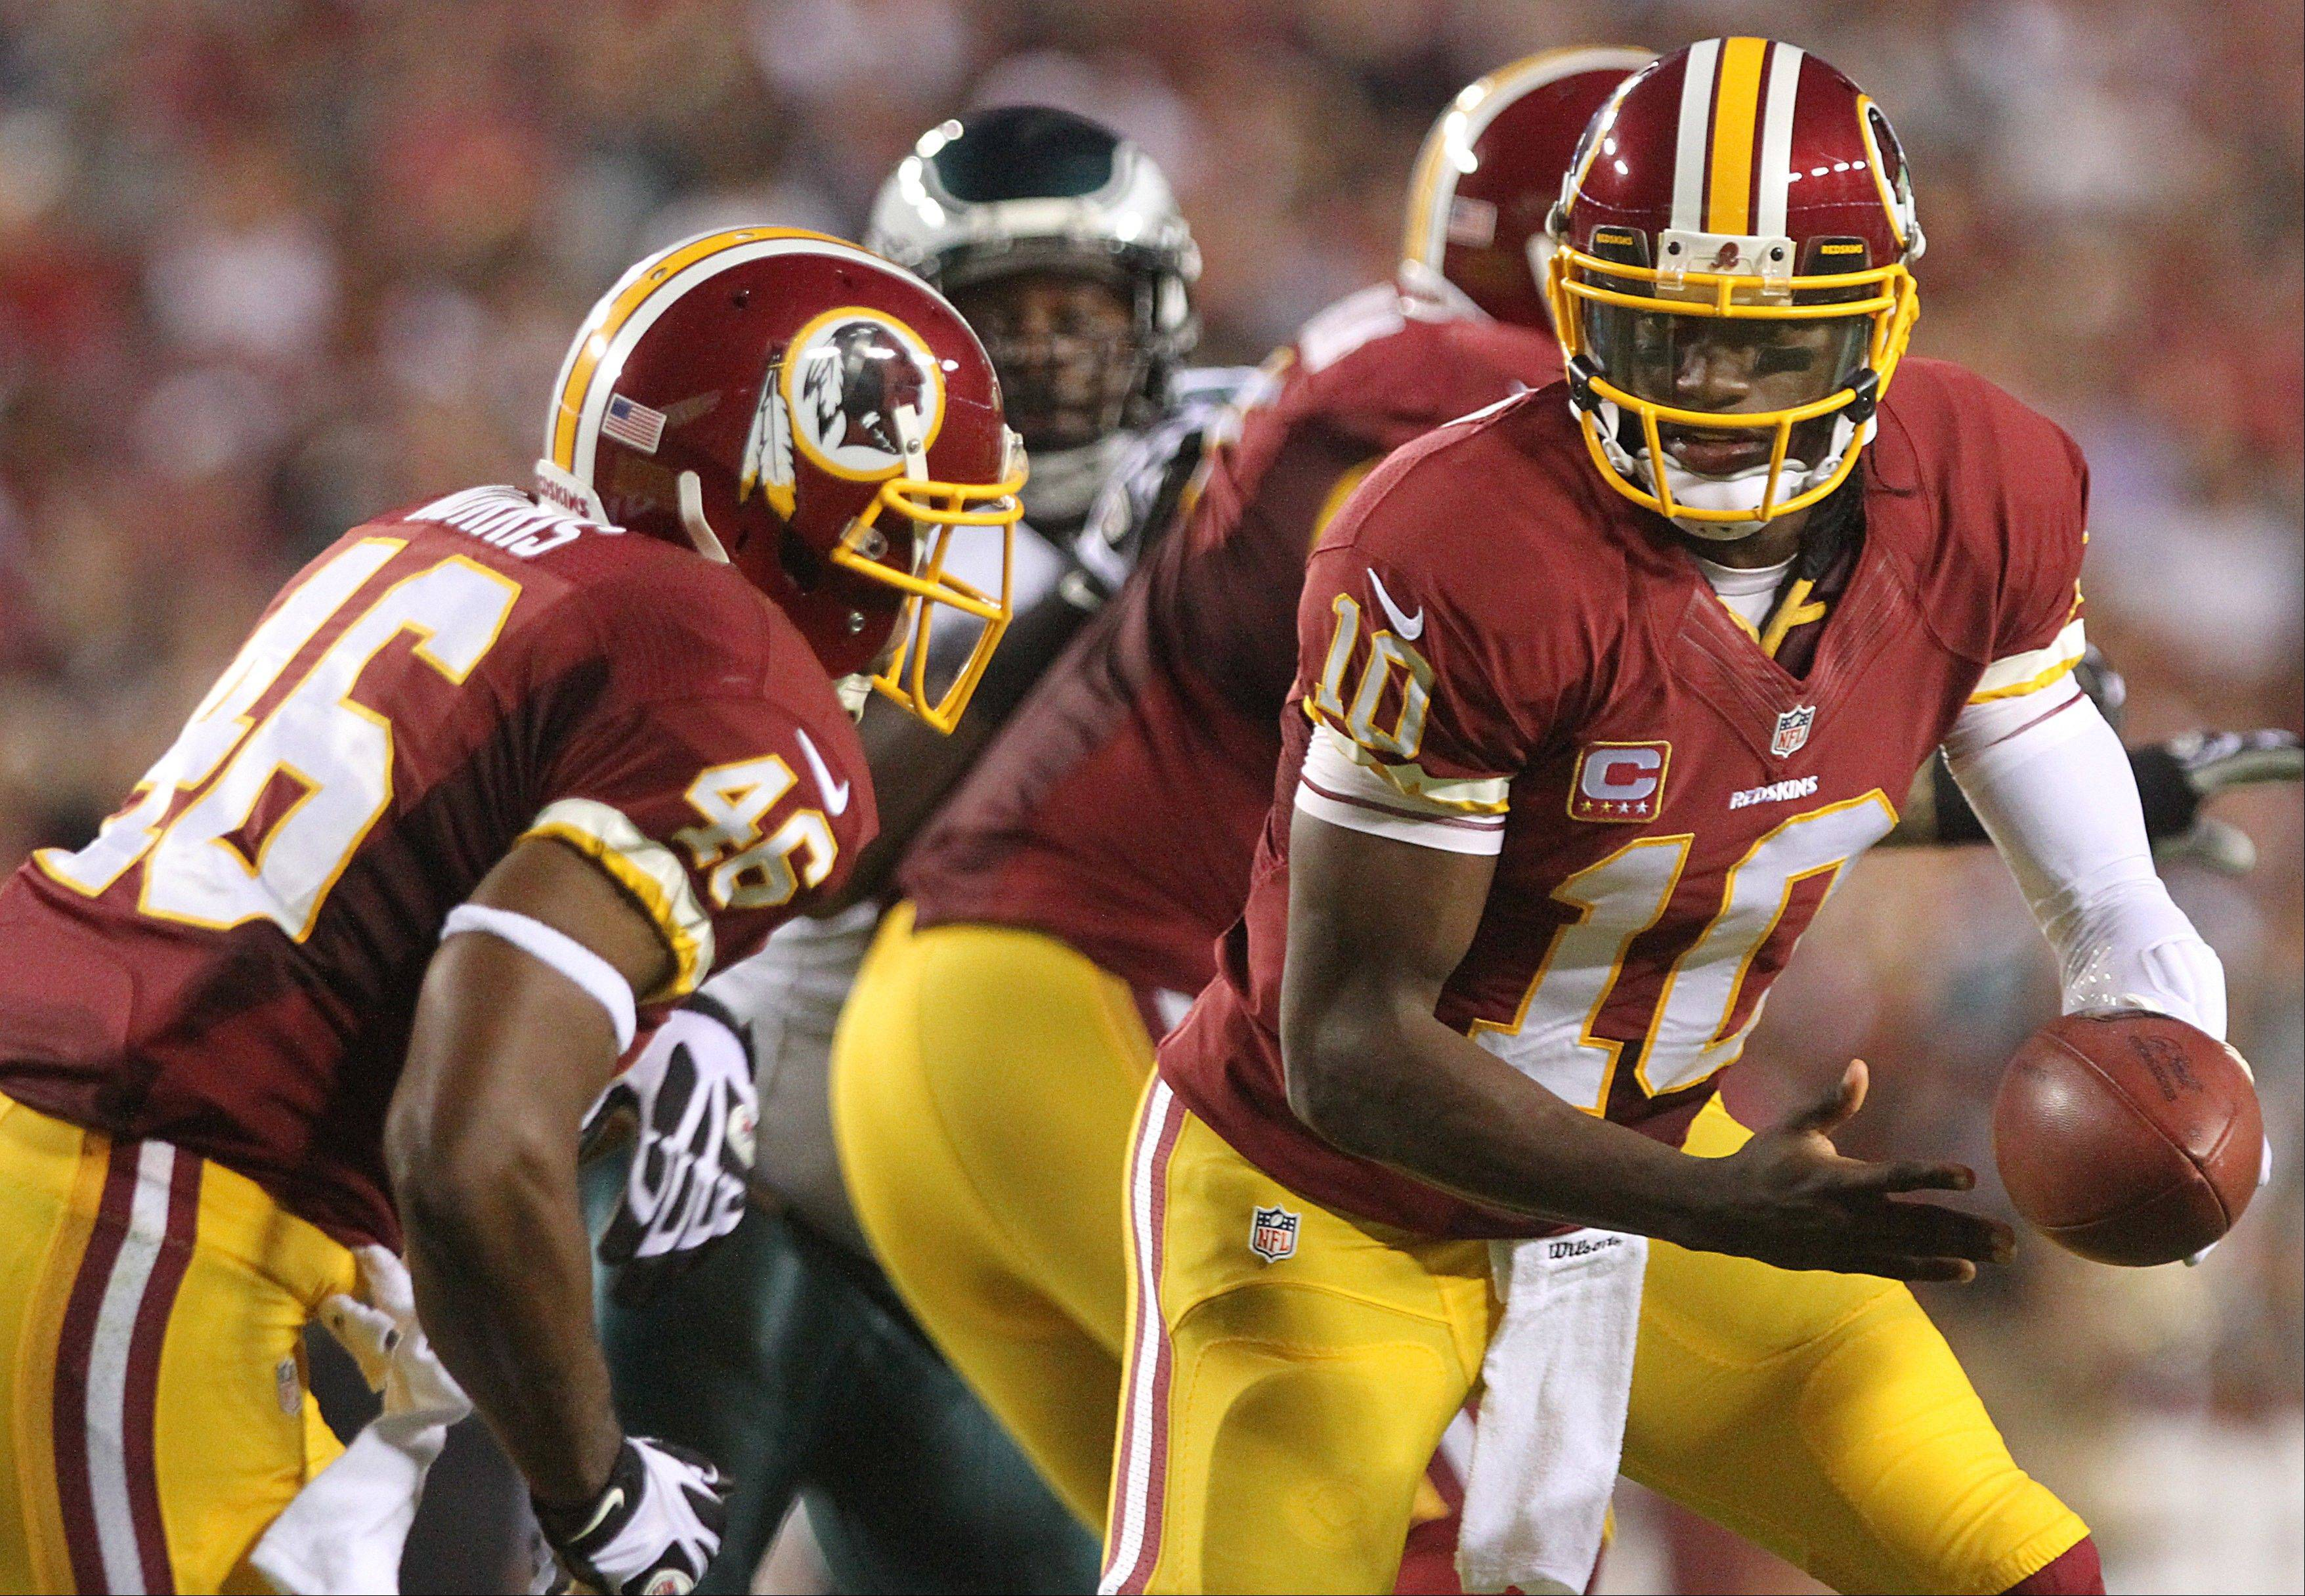 Washington Redskins quarterback Robert Griffin III turns to hand off to running back Alfred Morris during game Monday against the Philadelphia Eagles. Owner Dan Snyder has vowed never to change the team�s name.